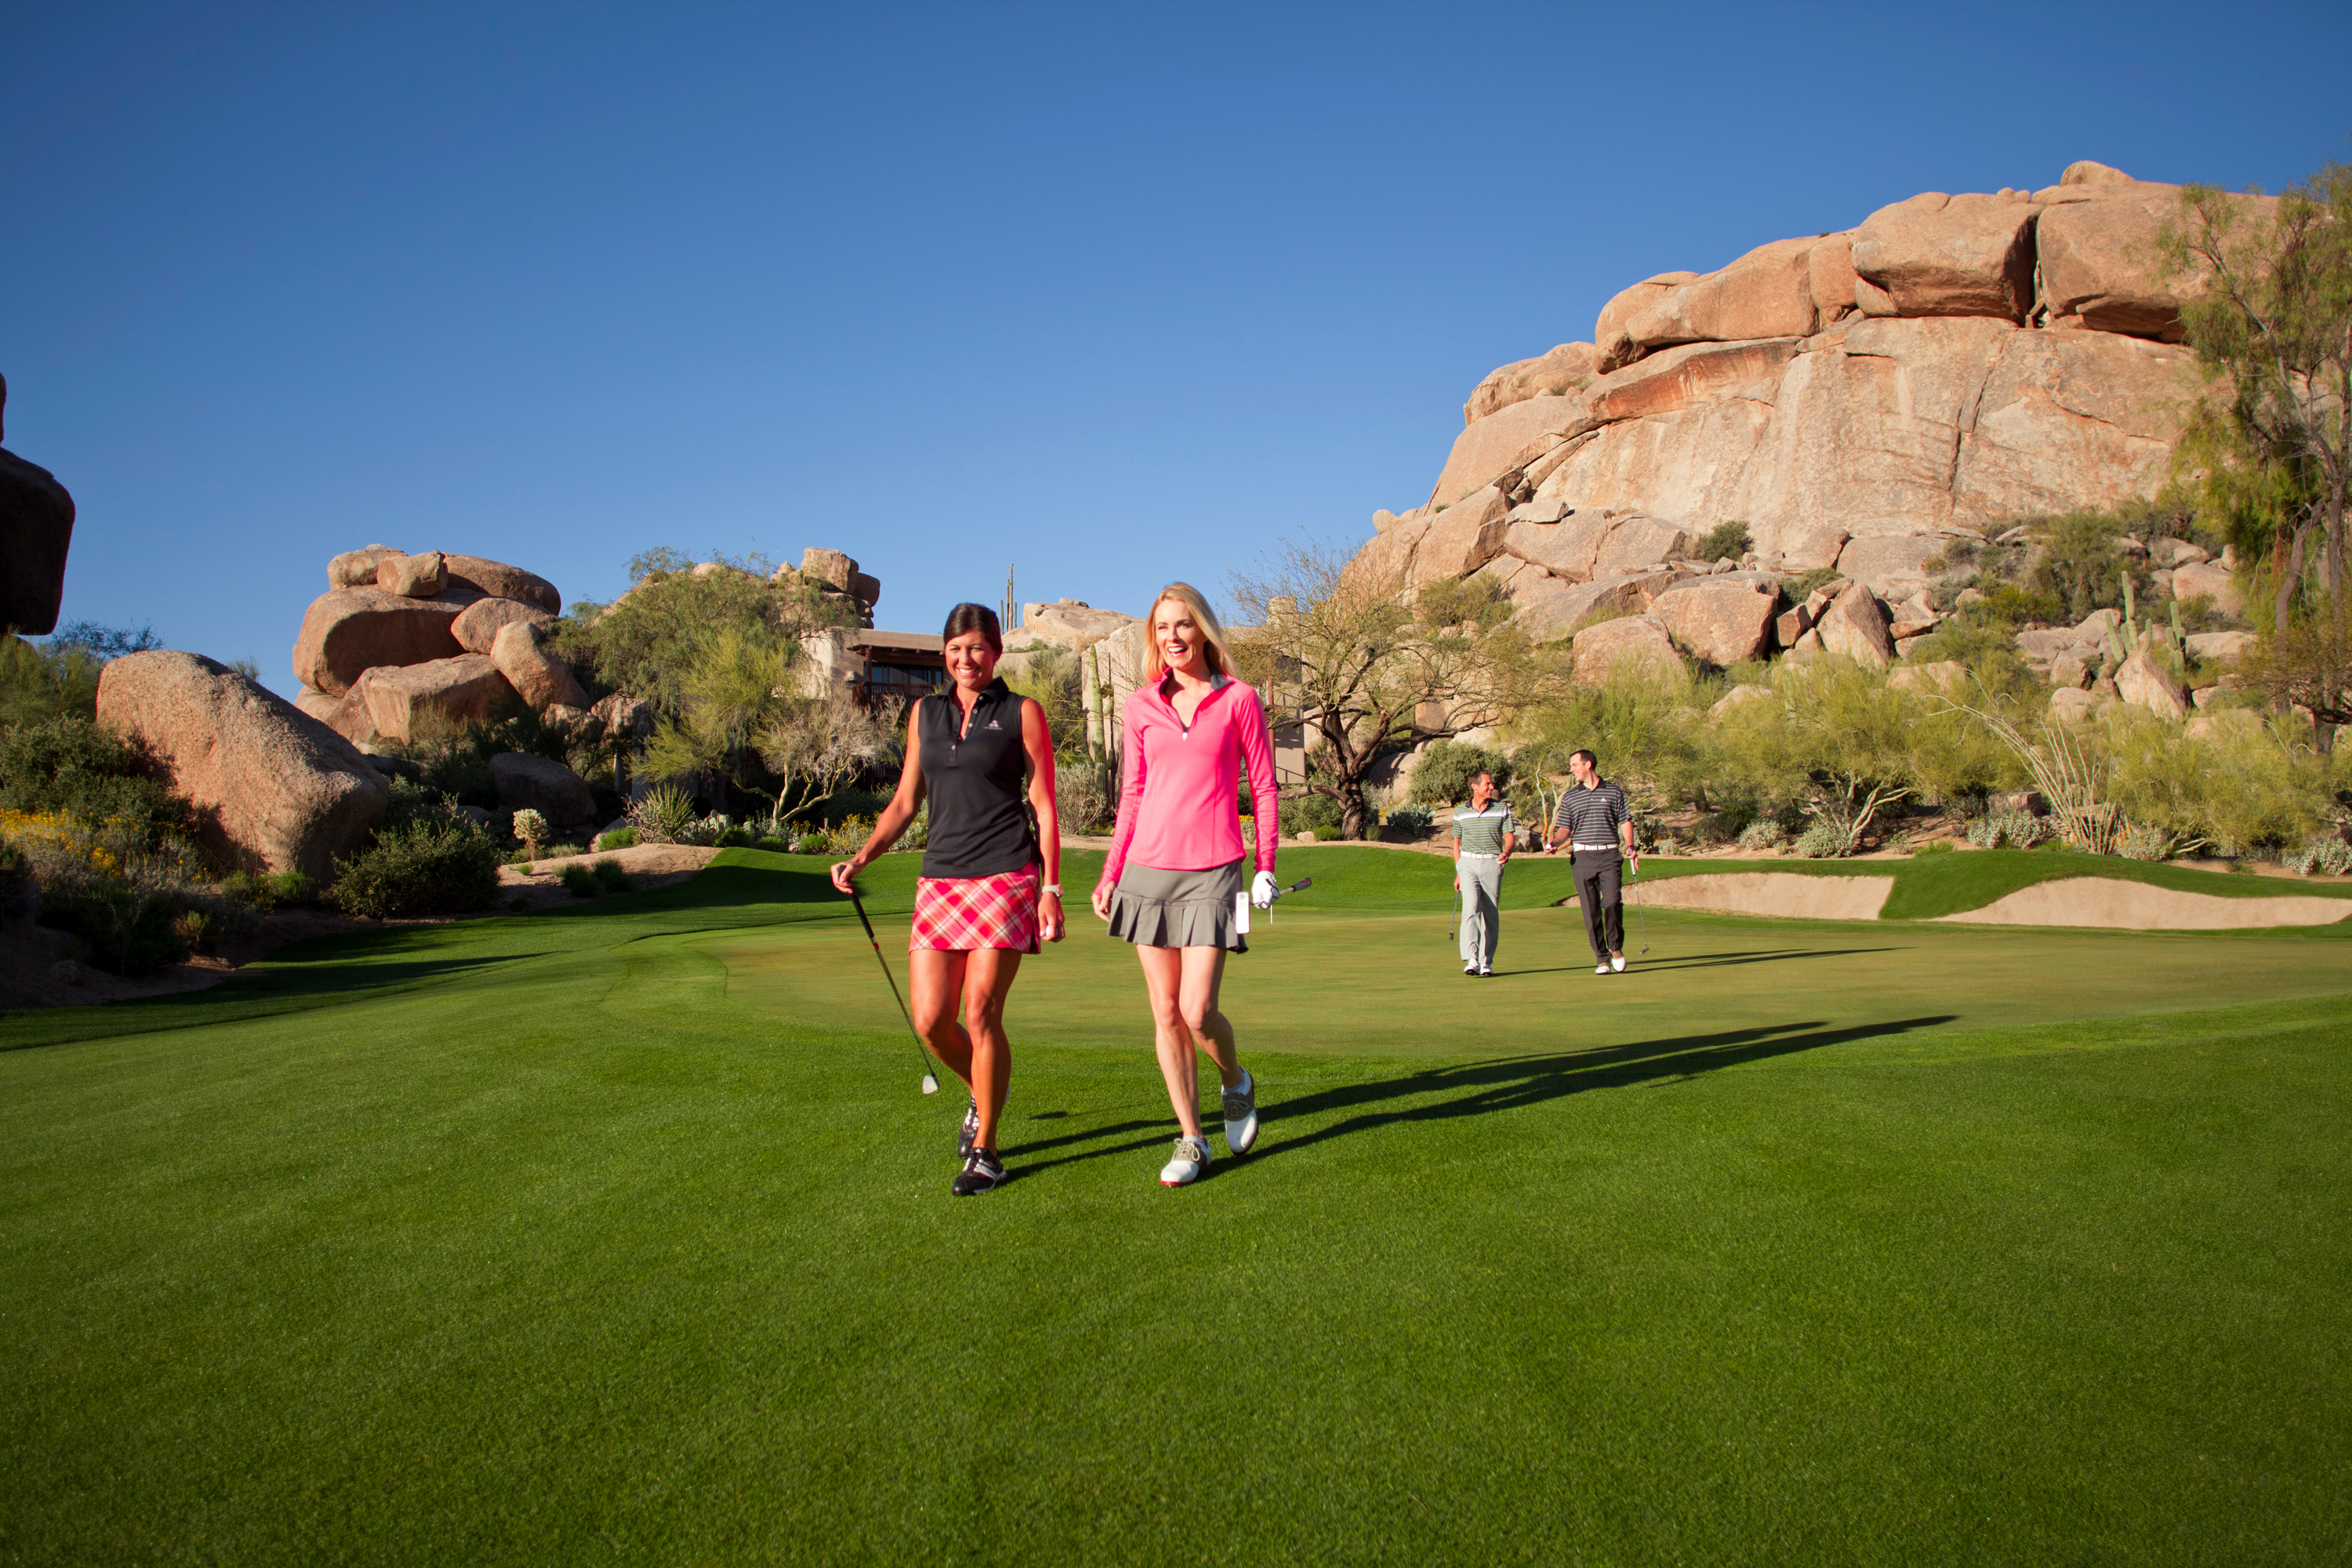 Hotel in AZ Carefree 85377 Boulders Resort & Spa, Curio Collection by Hilton 34631 N Tom Darlington Drive  (480)488-9009